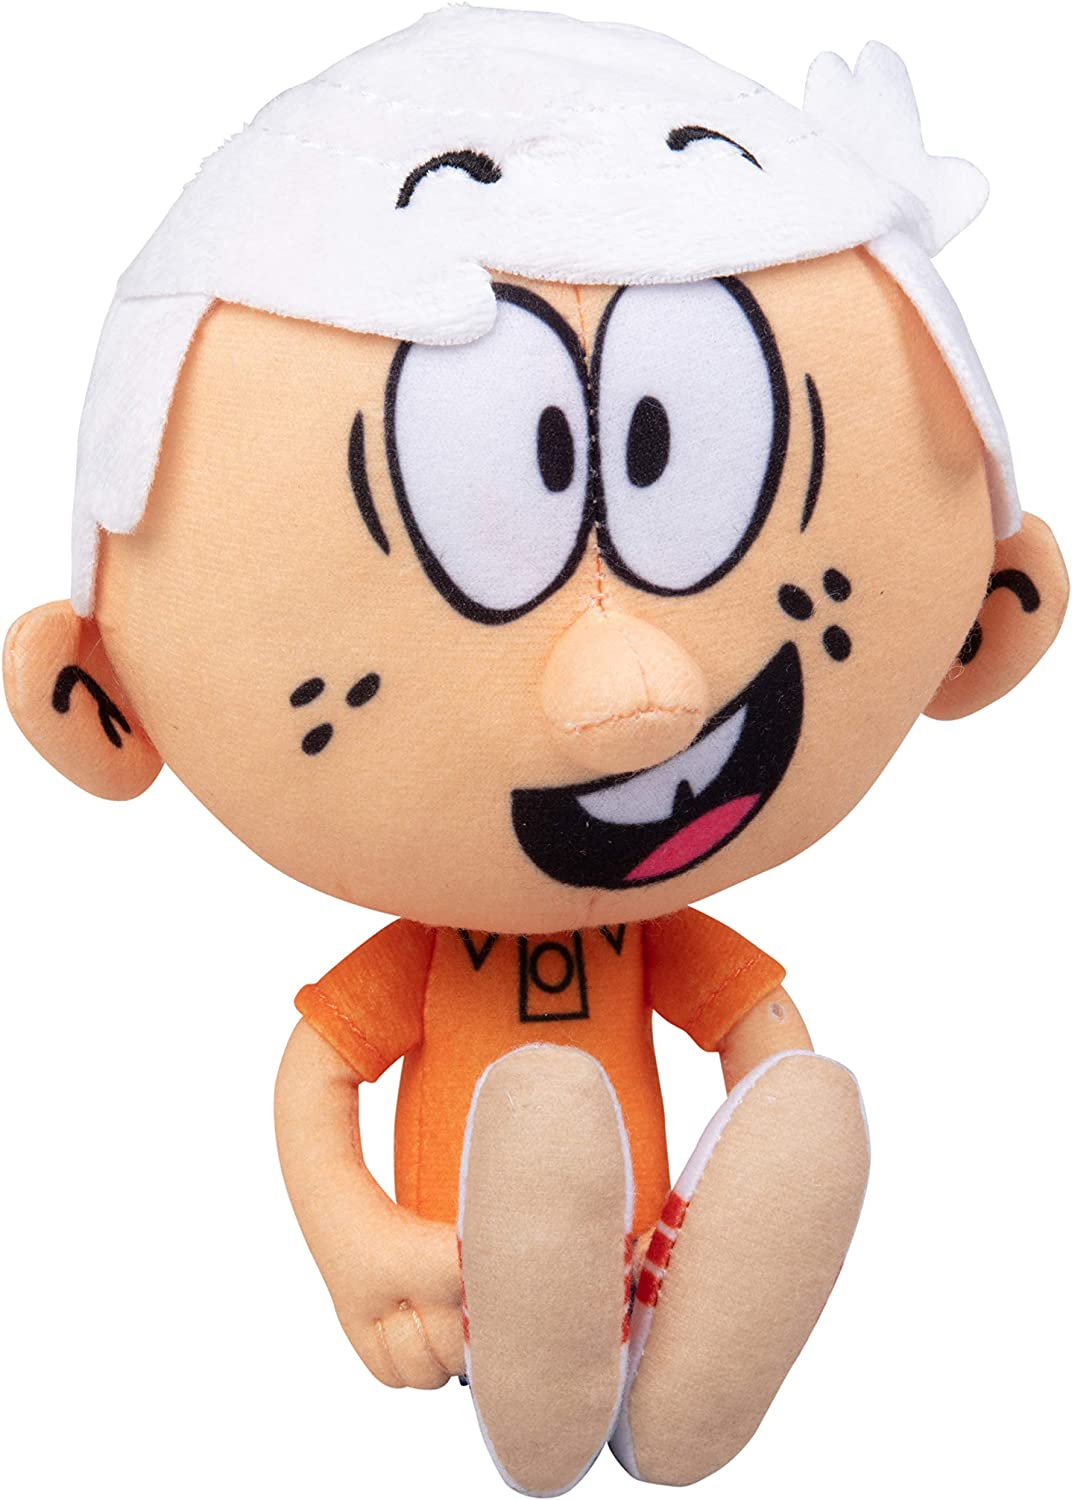 """The Loud House Lincoln 8/"""" Stuffed Plush Toy Nickelodeon TV Show Officially"""